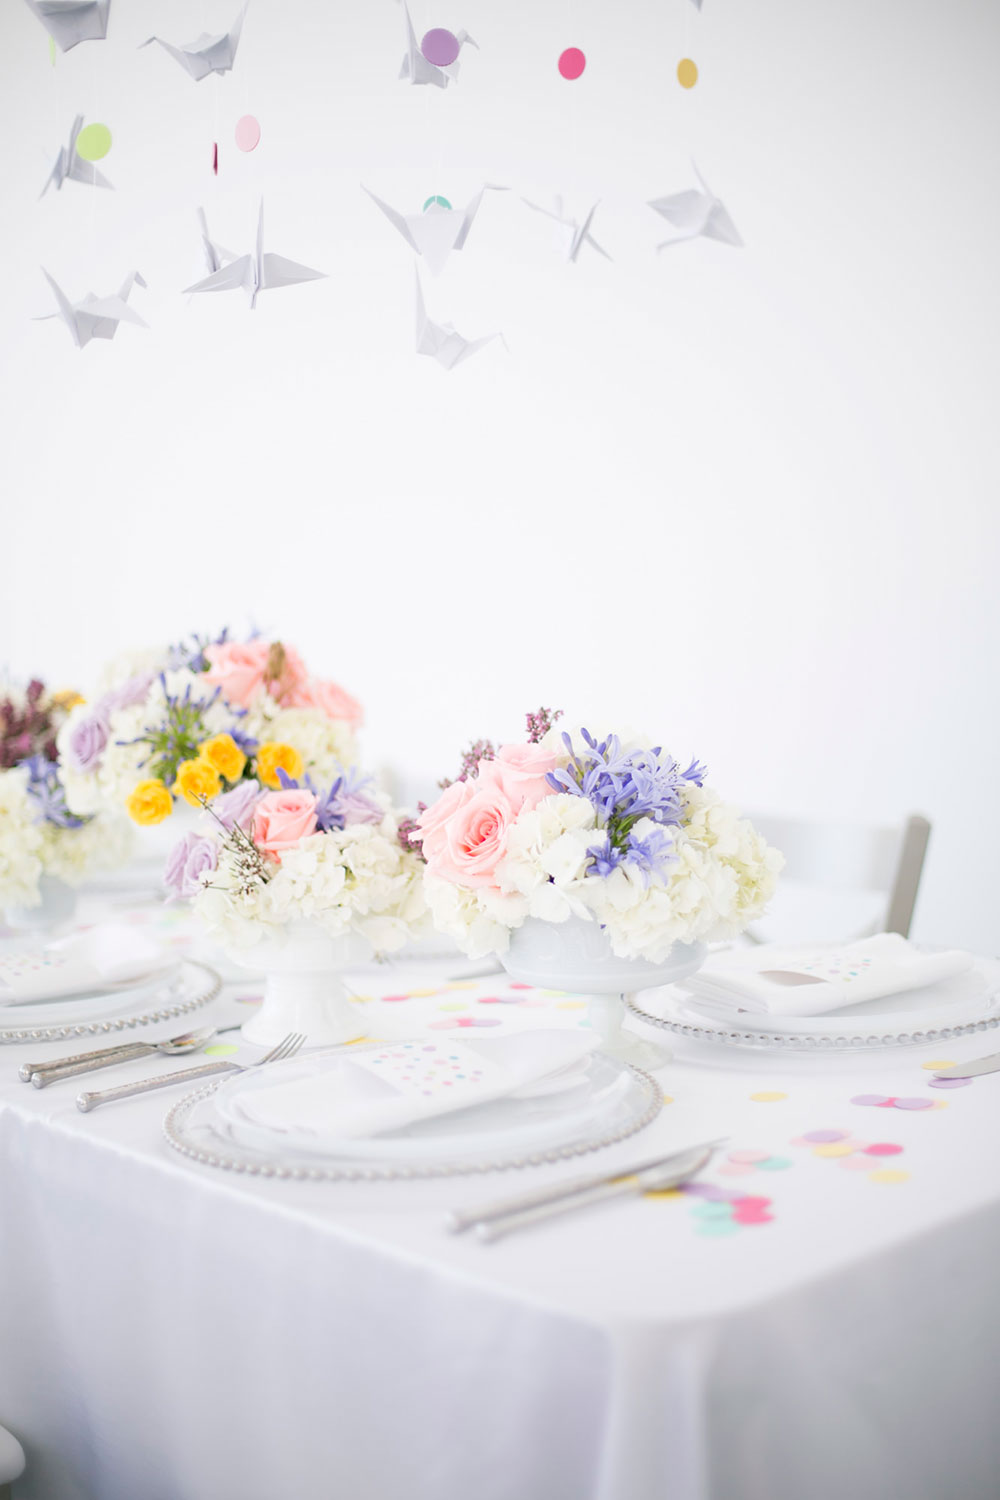 Wedding-Bells-Magazine-Wedding-Feature-Neon-Confetti-Editorial-photographers-Willowbank-Estate-photo-by-eva-derrick-photography-philosophy-studios-036.jpg